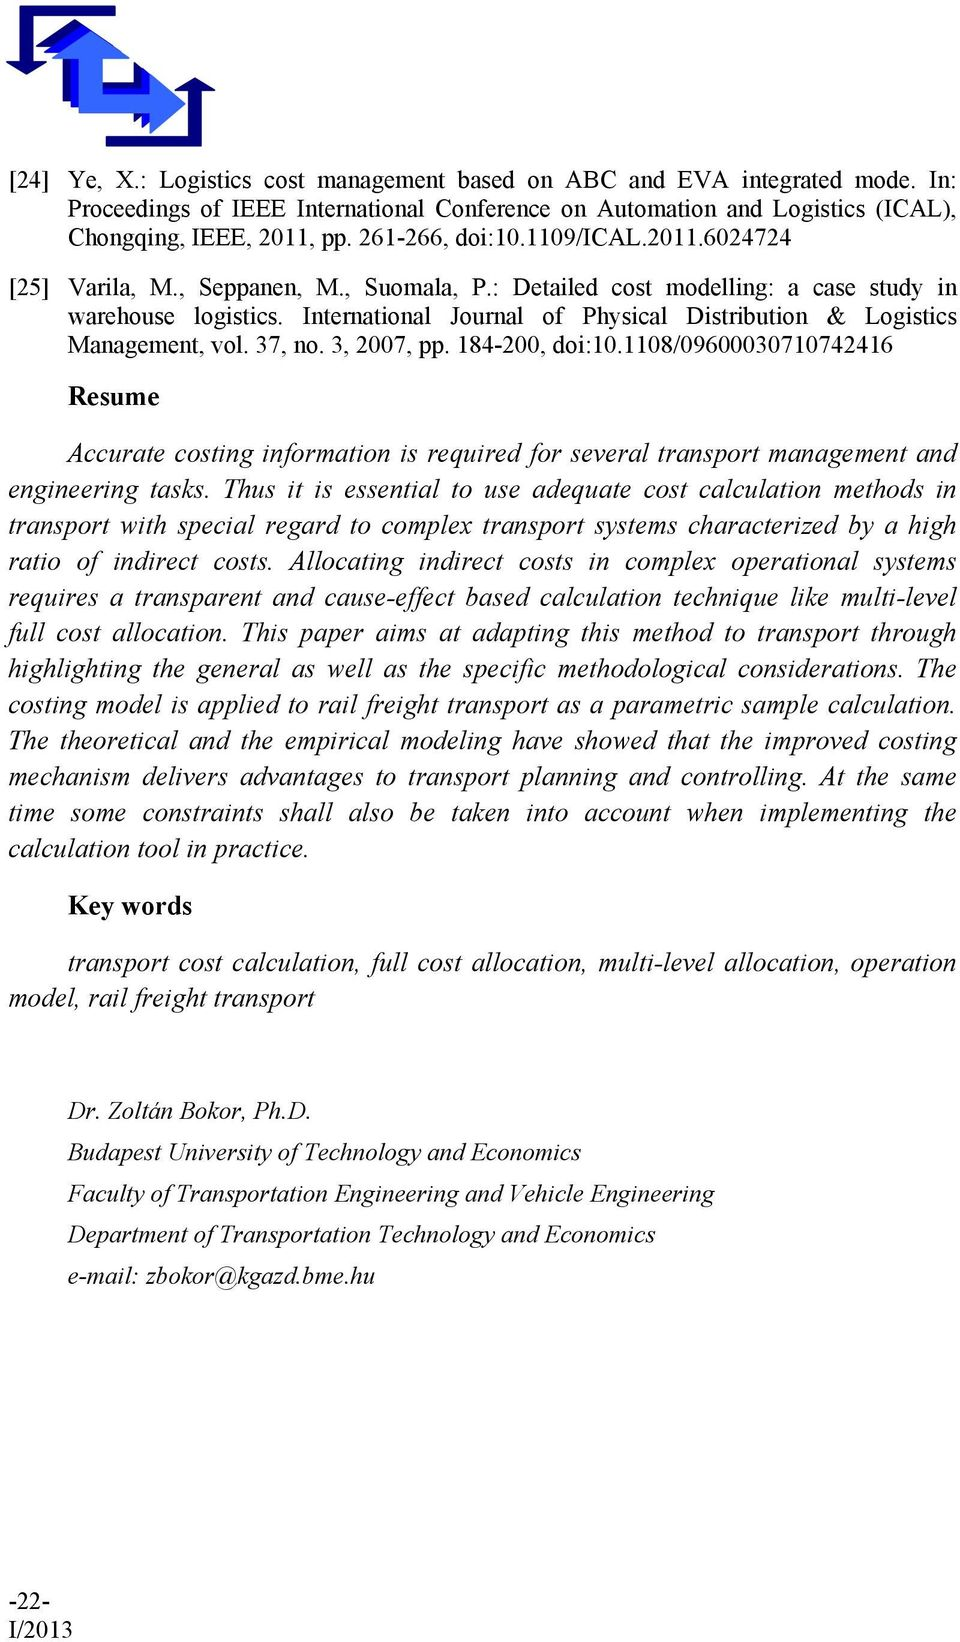 37, no. 3, 2007,. 184-200, doi:10.1108/09600030710742416 Resume Accurate costing information is required for several transort management and engineering tasks.